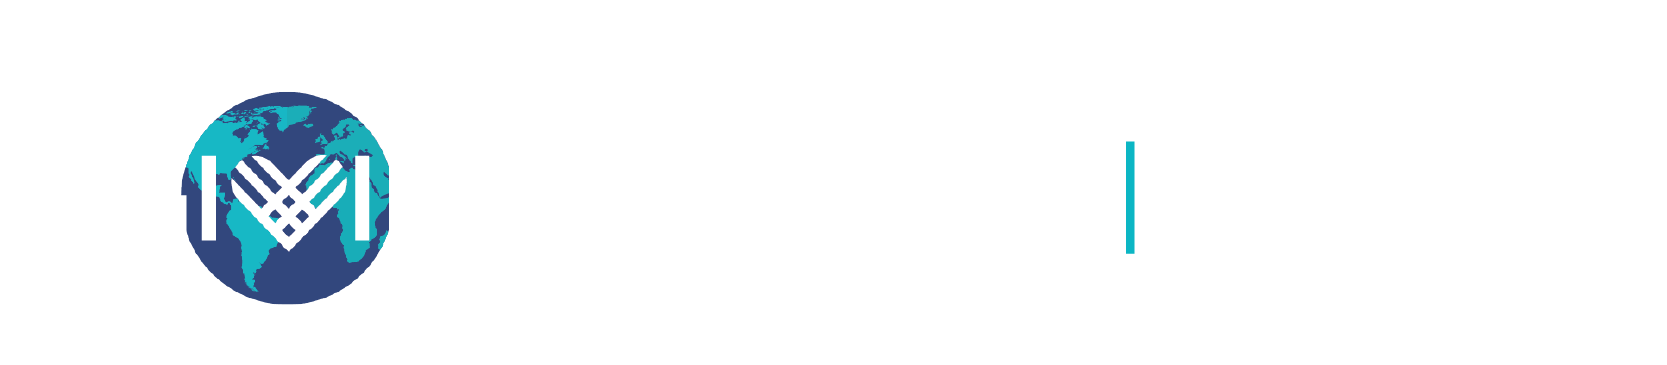 Giving Tuesday Now, May 5, 2020